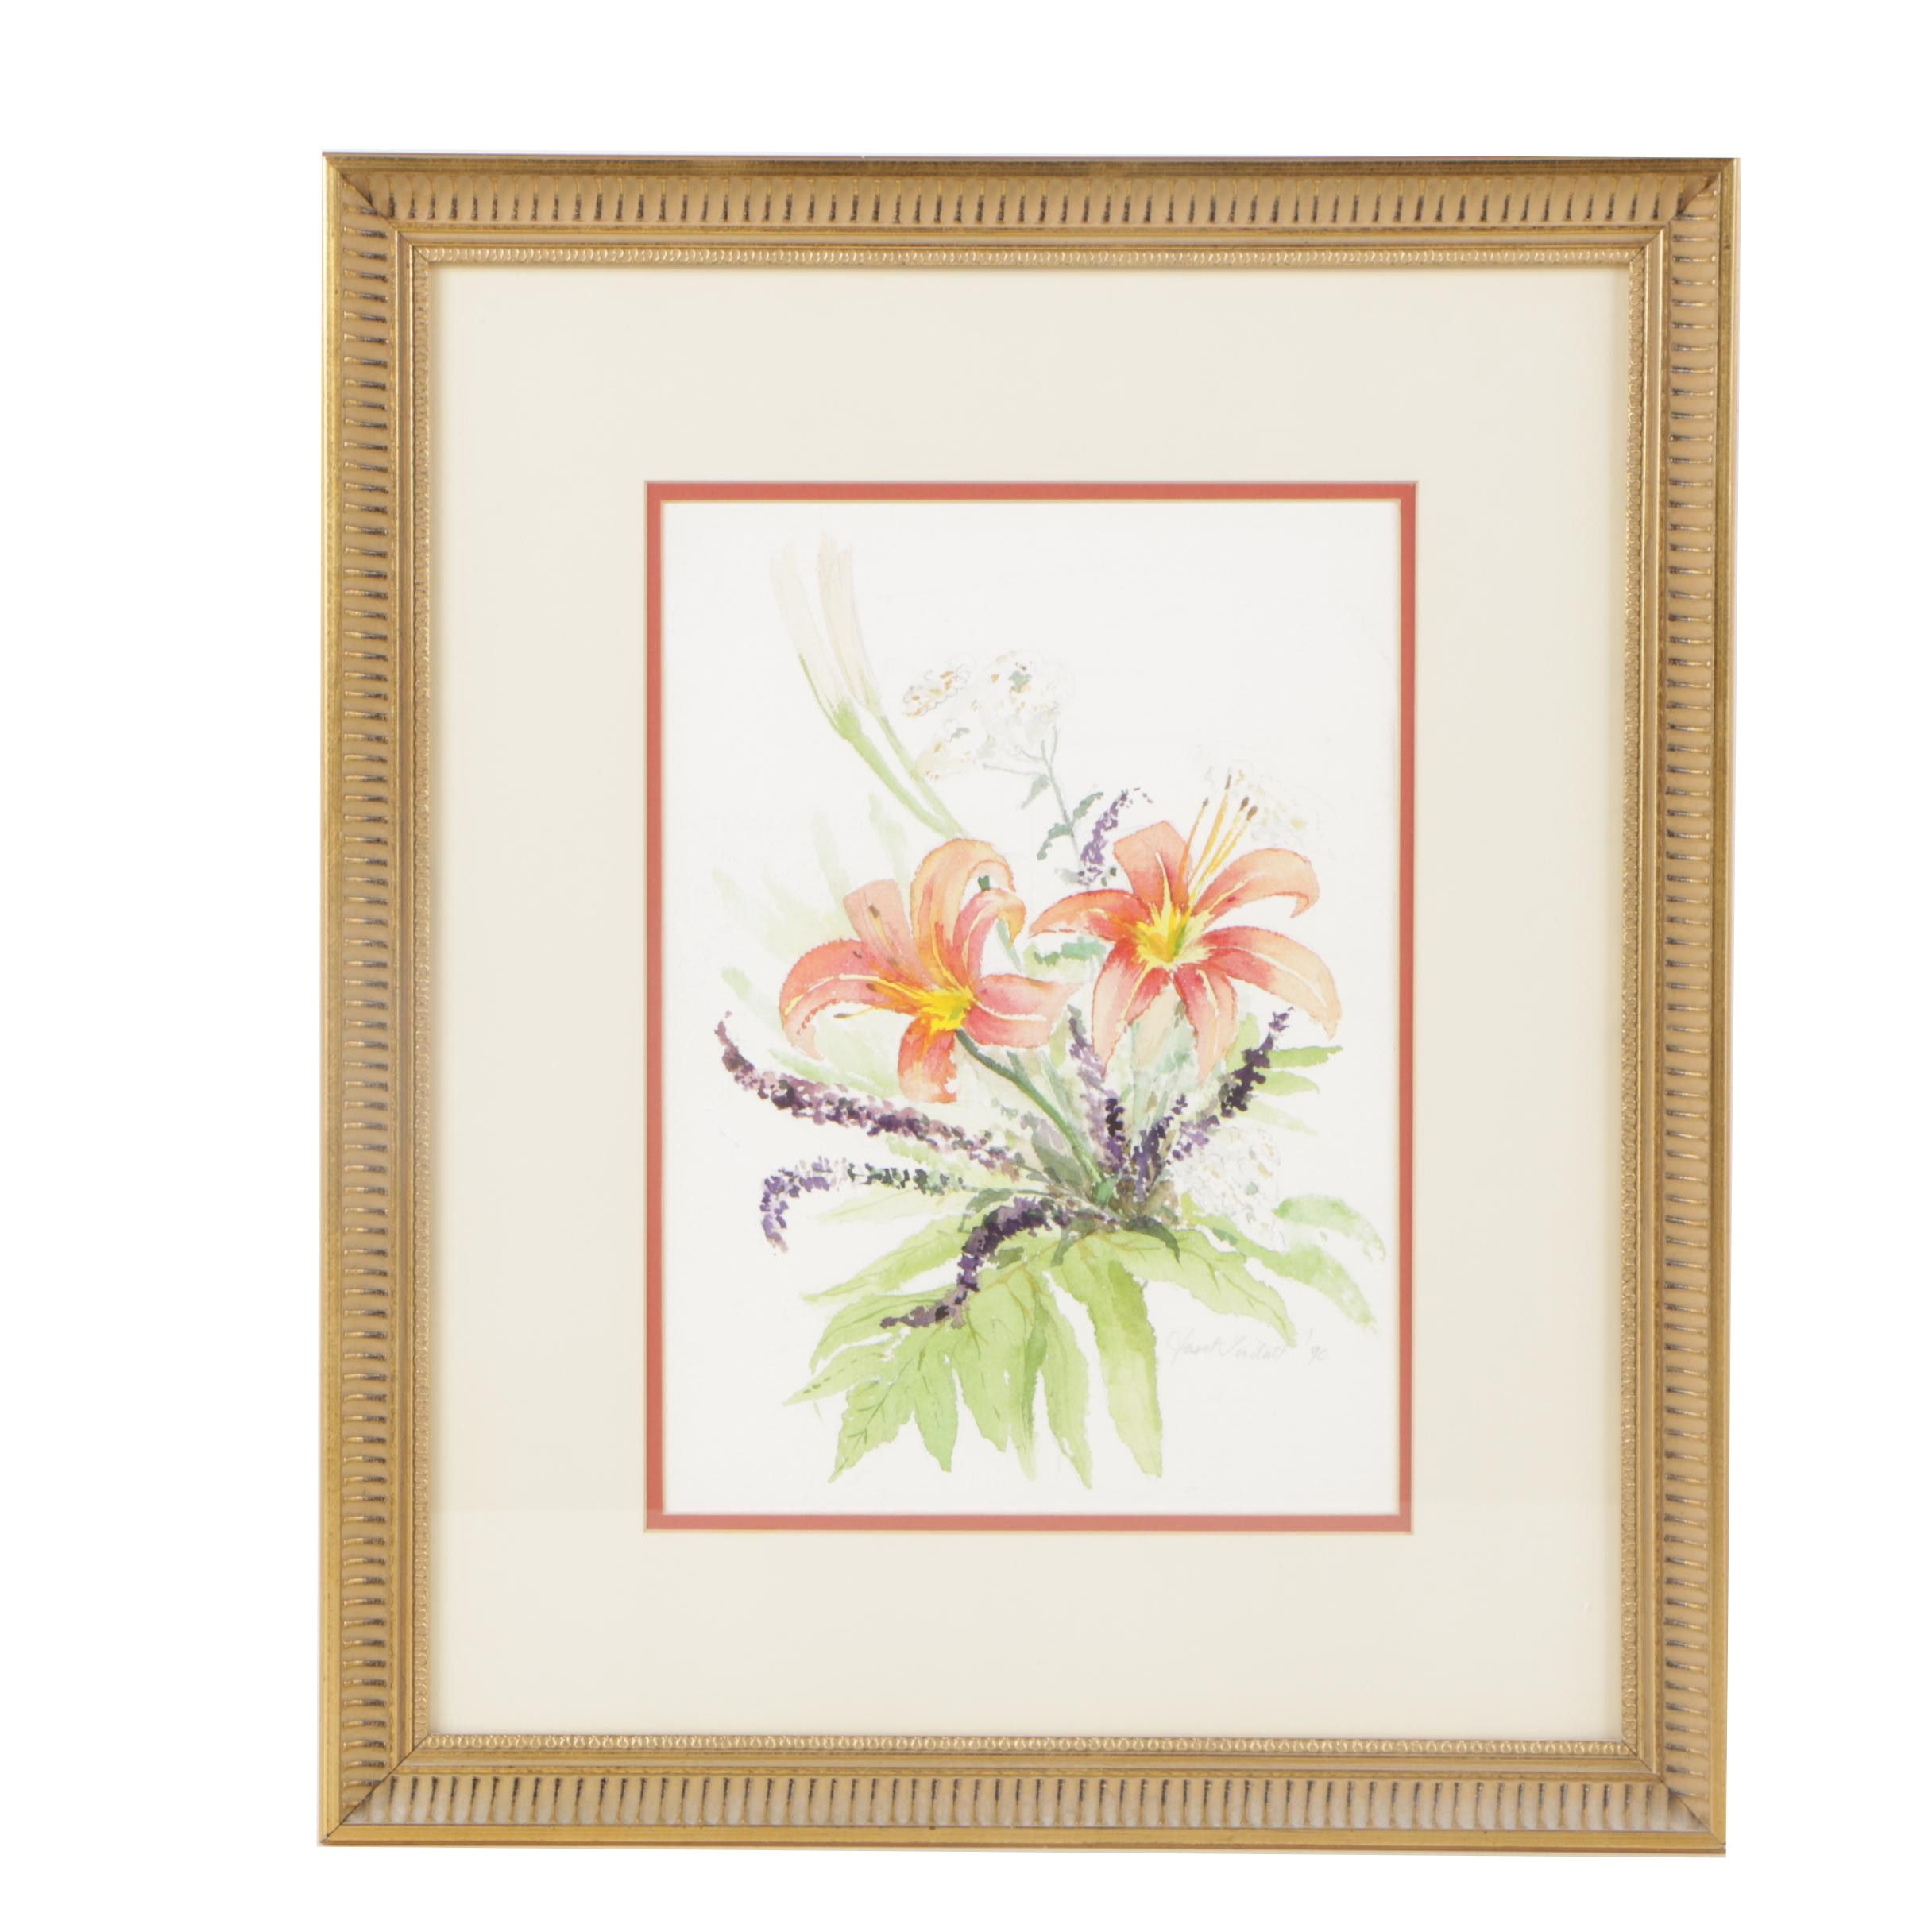 Janet Lindall 1990 Watercolor Painting of Tiger Lilies and Lavender